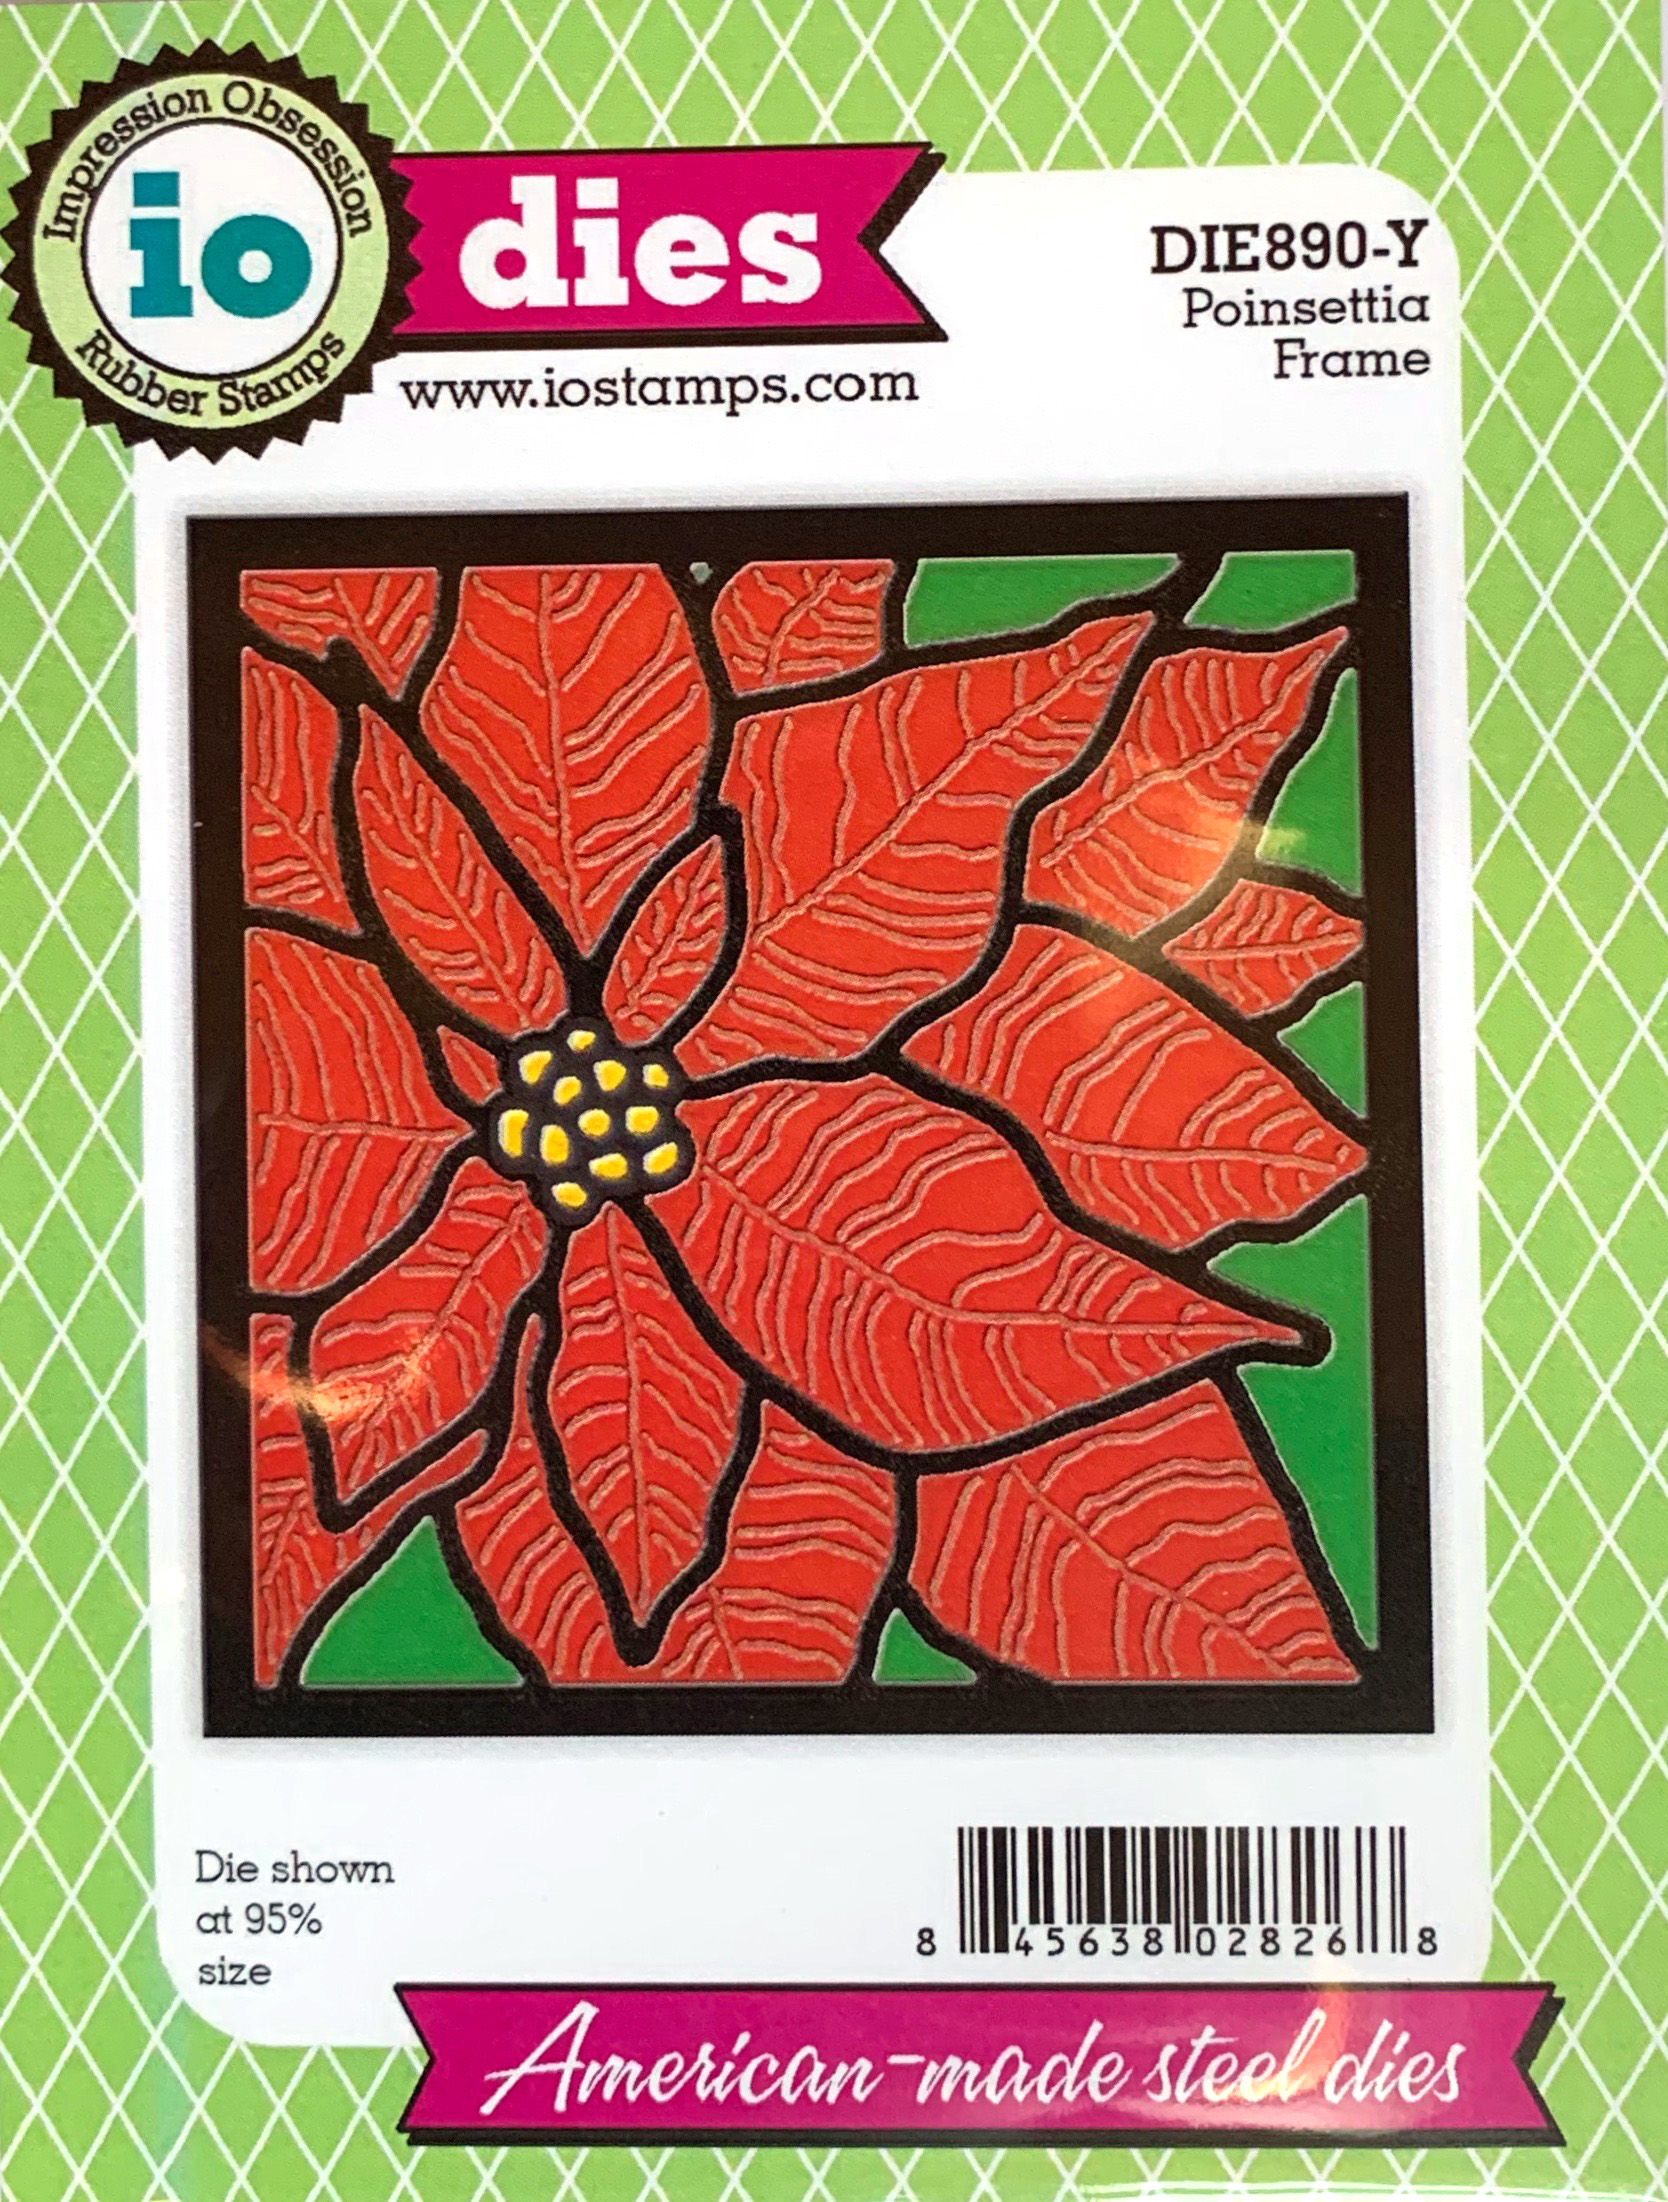 Impression Obsession Quilted Poinsettia Frame Die